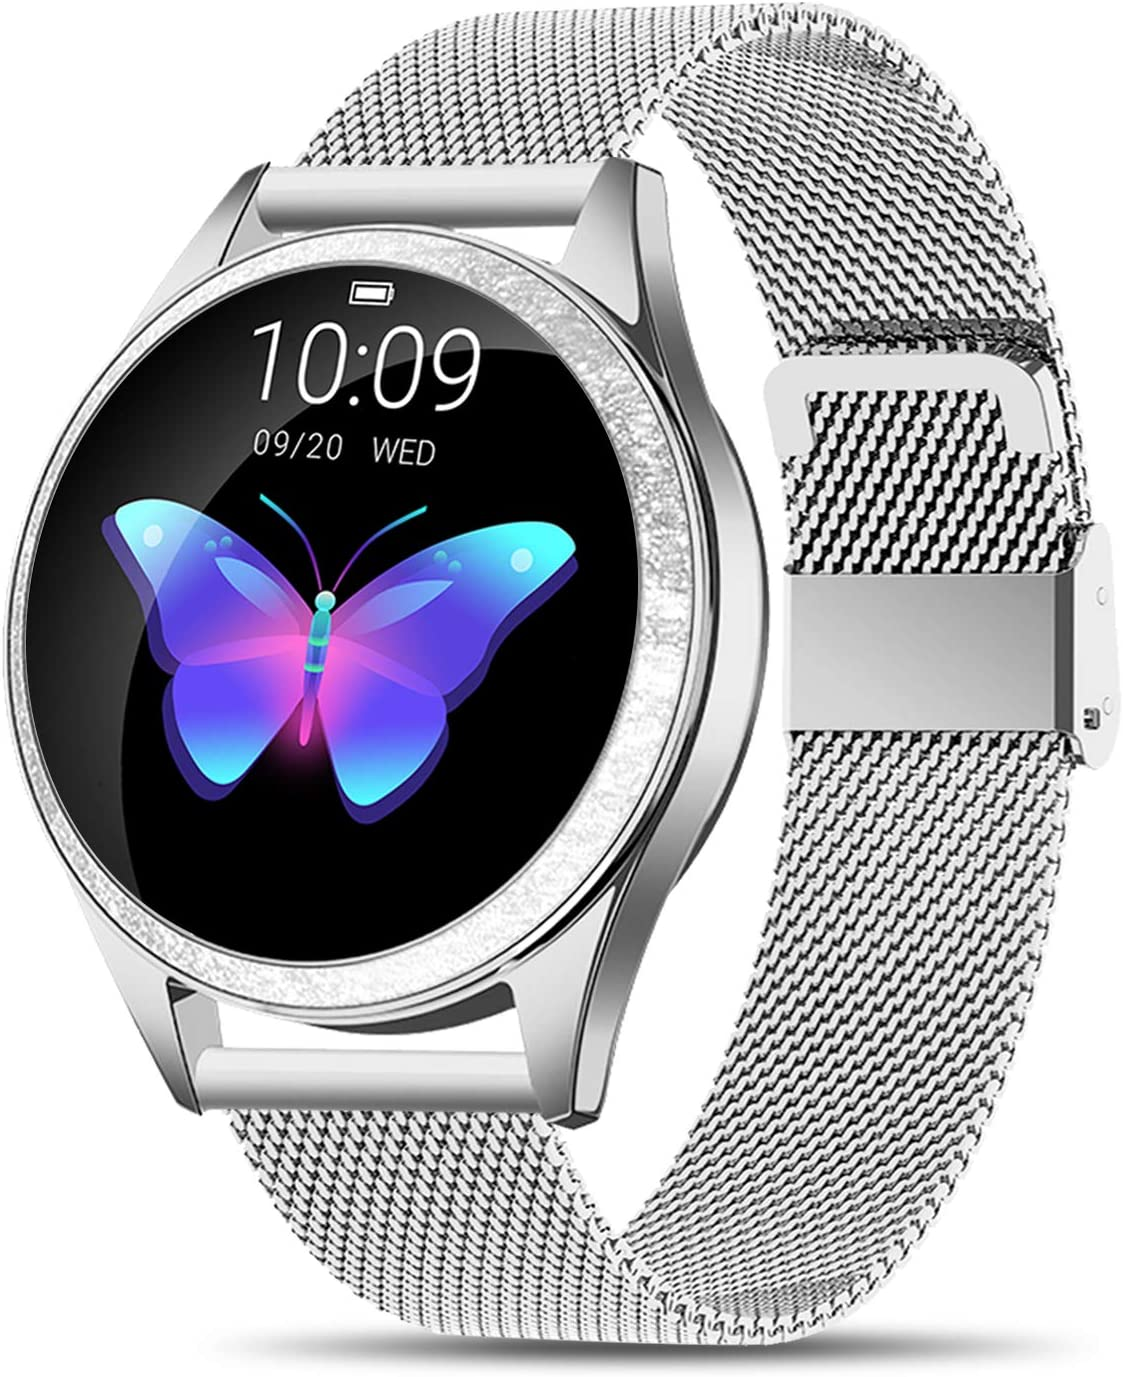 Yocuby V2 Smart Watch for Women, Fitness Tracker Compatible with iOS Android Phone, Sport Activity Tracker with Sleep/Heart Rate Monitor/Find My Phone/Physiological Reminder (Silver)